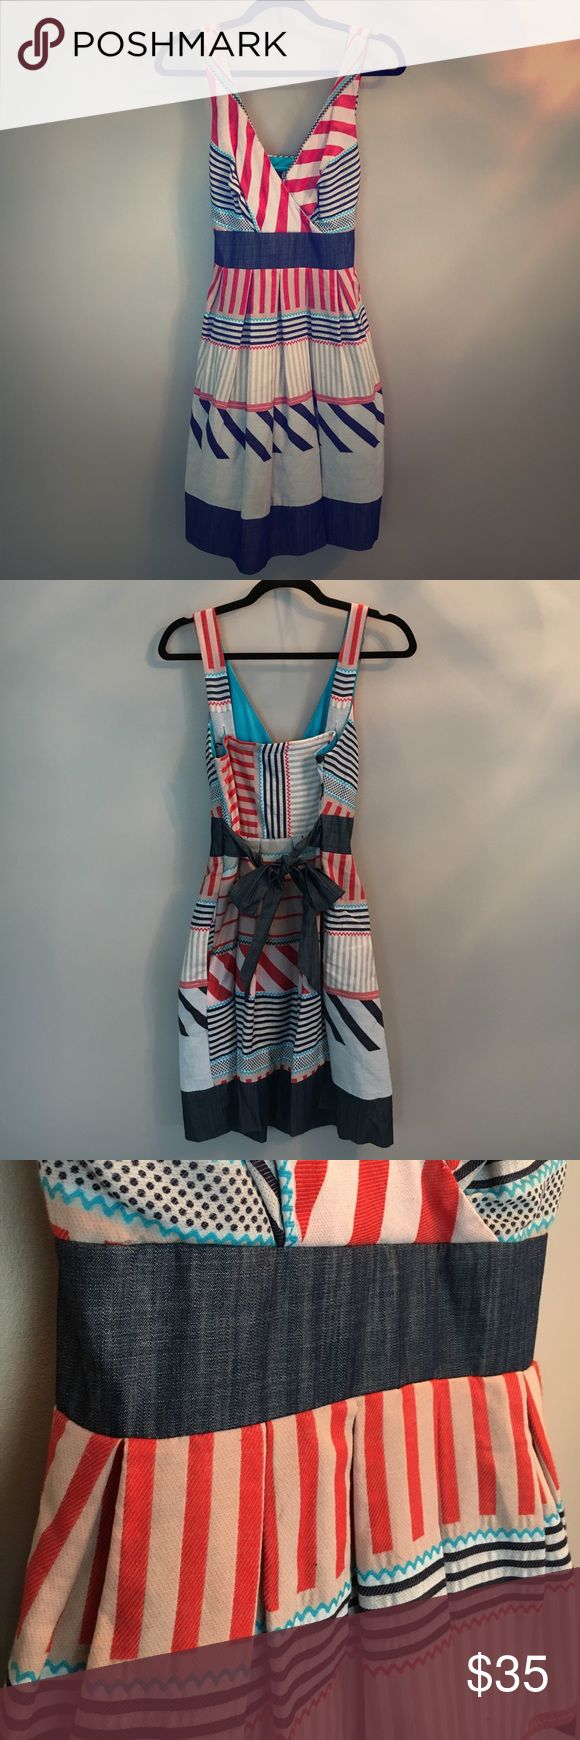 Patterned Bow Back Dress Red, white and blue patterned dress. Bow detail in back. Adjustable straps. Great condition. Eva Franco Dresses Midi